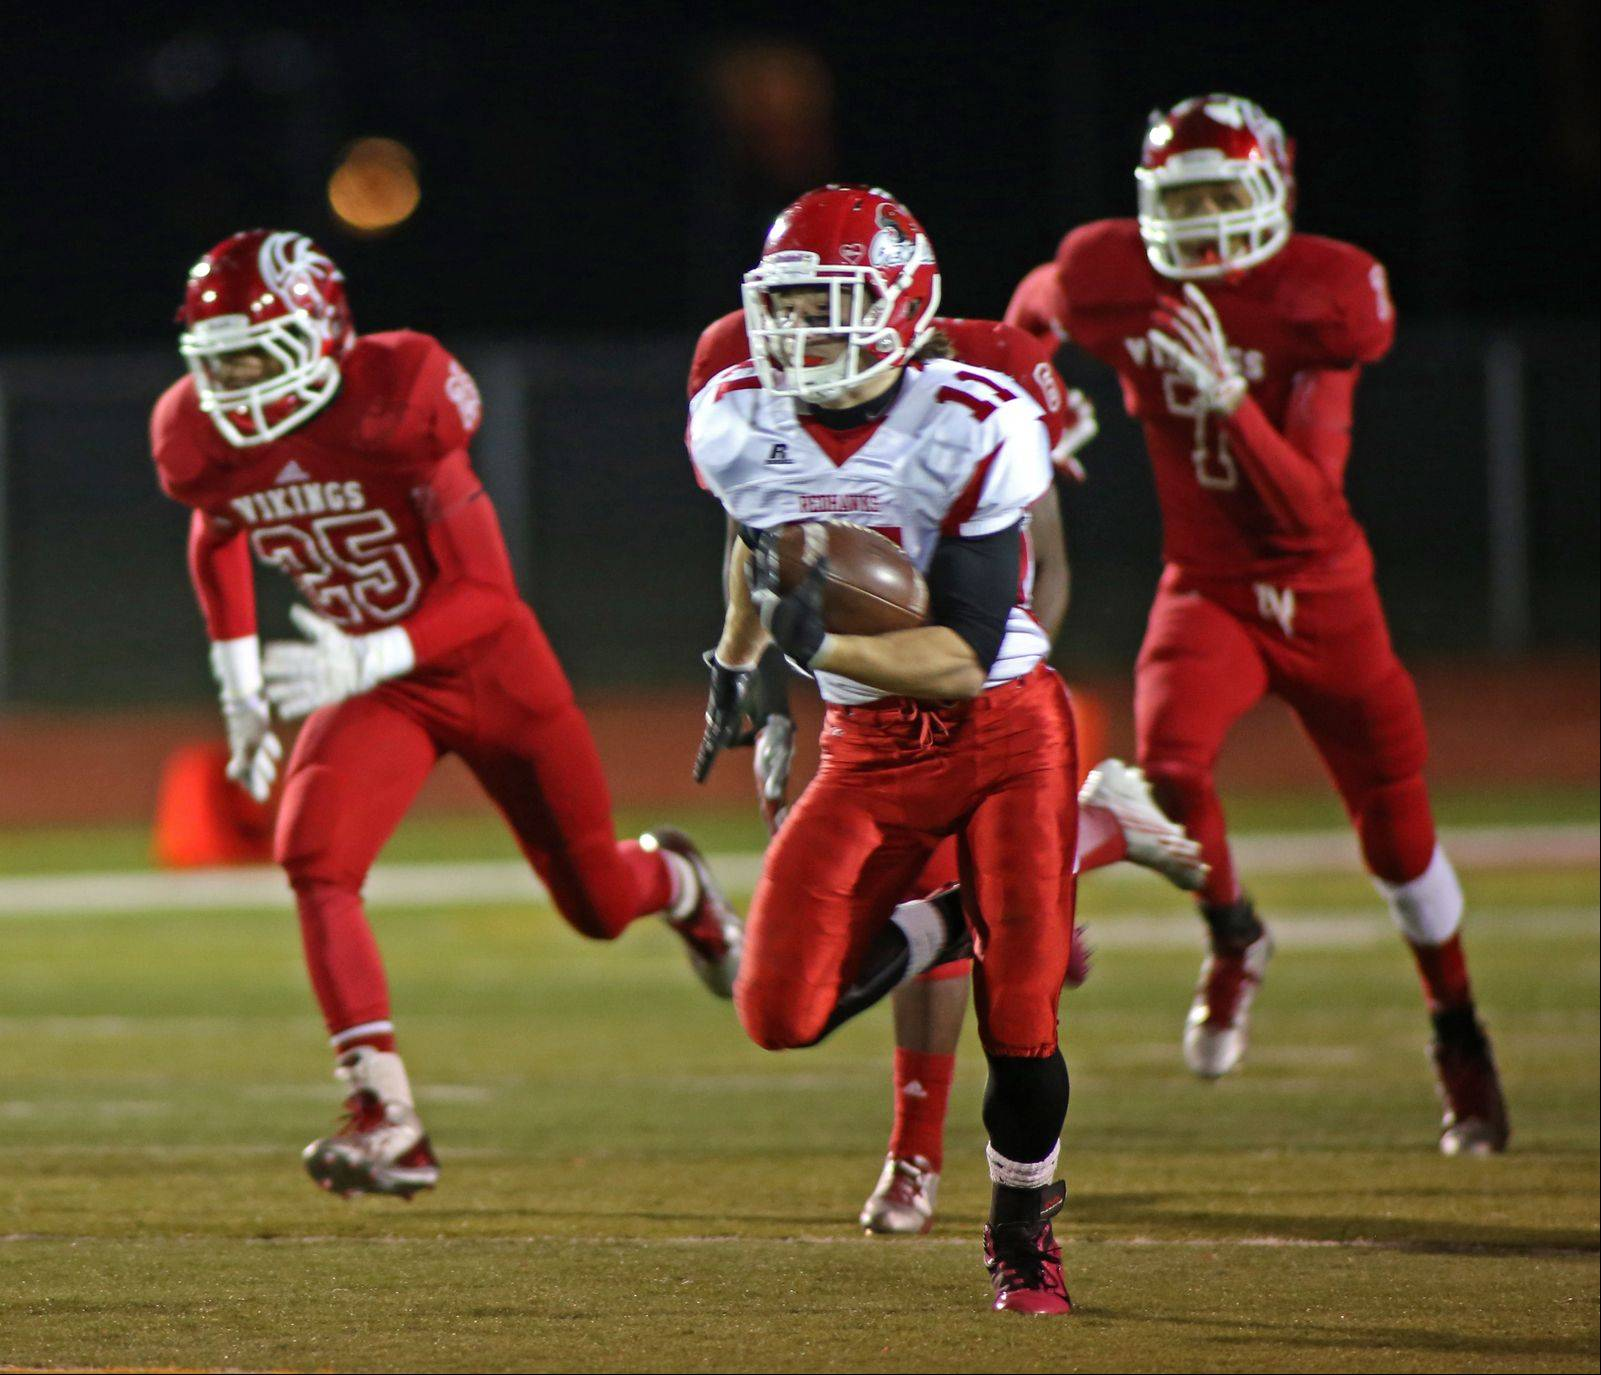 Naperville Central�s Ben Andreas runs for 80 yards to score the game-winning touchdown, giving the Redhawks a 24-21 win.